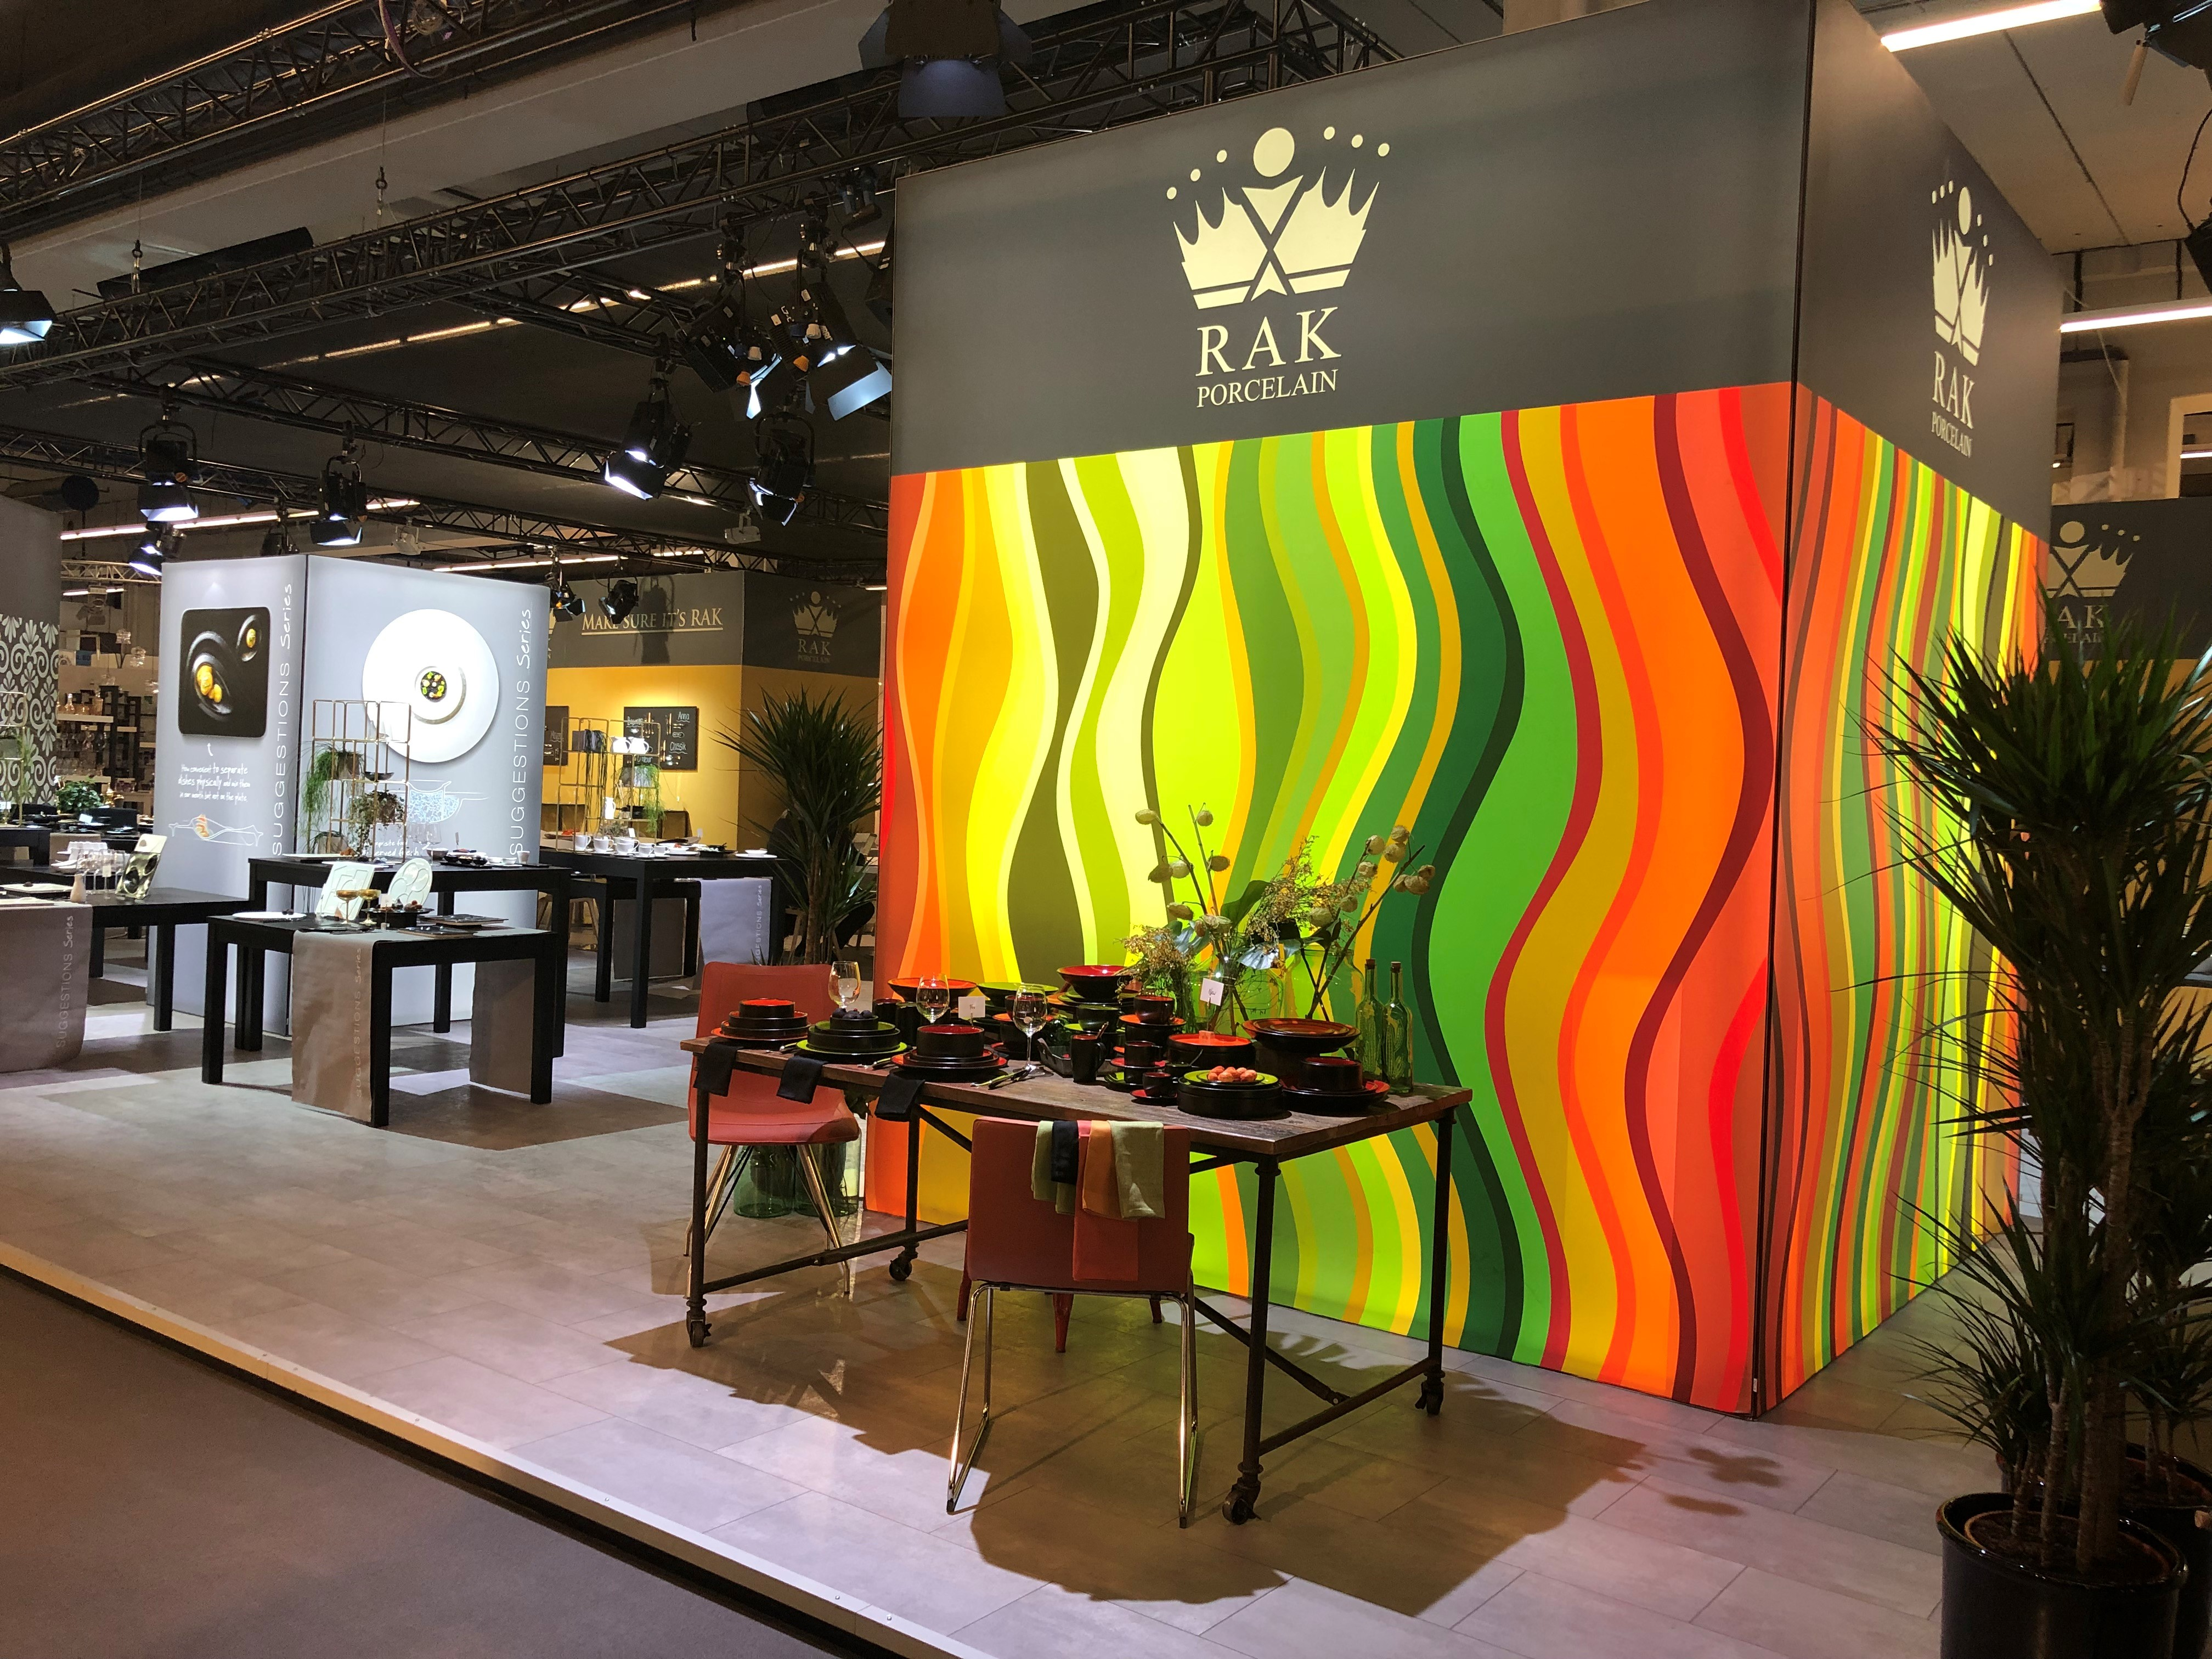 RAK Porcelain at Ambiente - FV